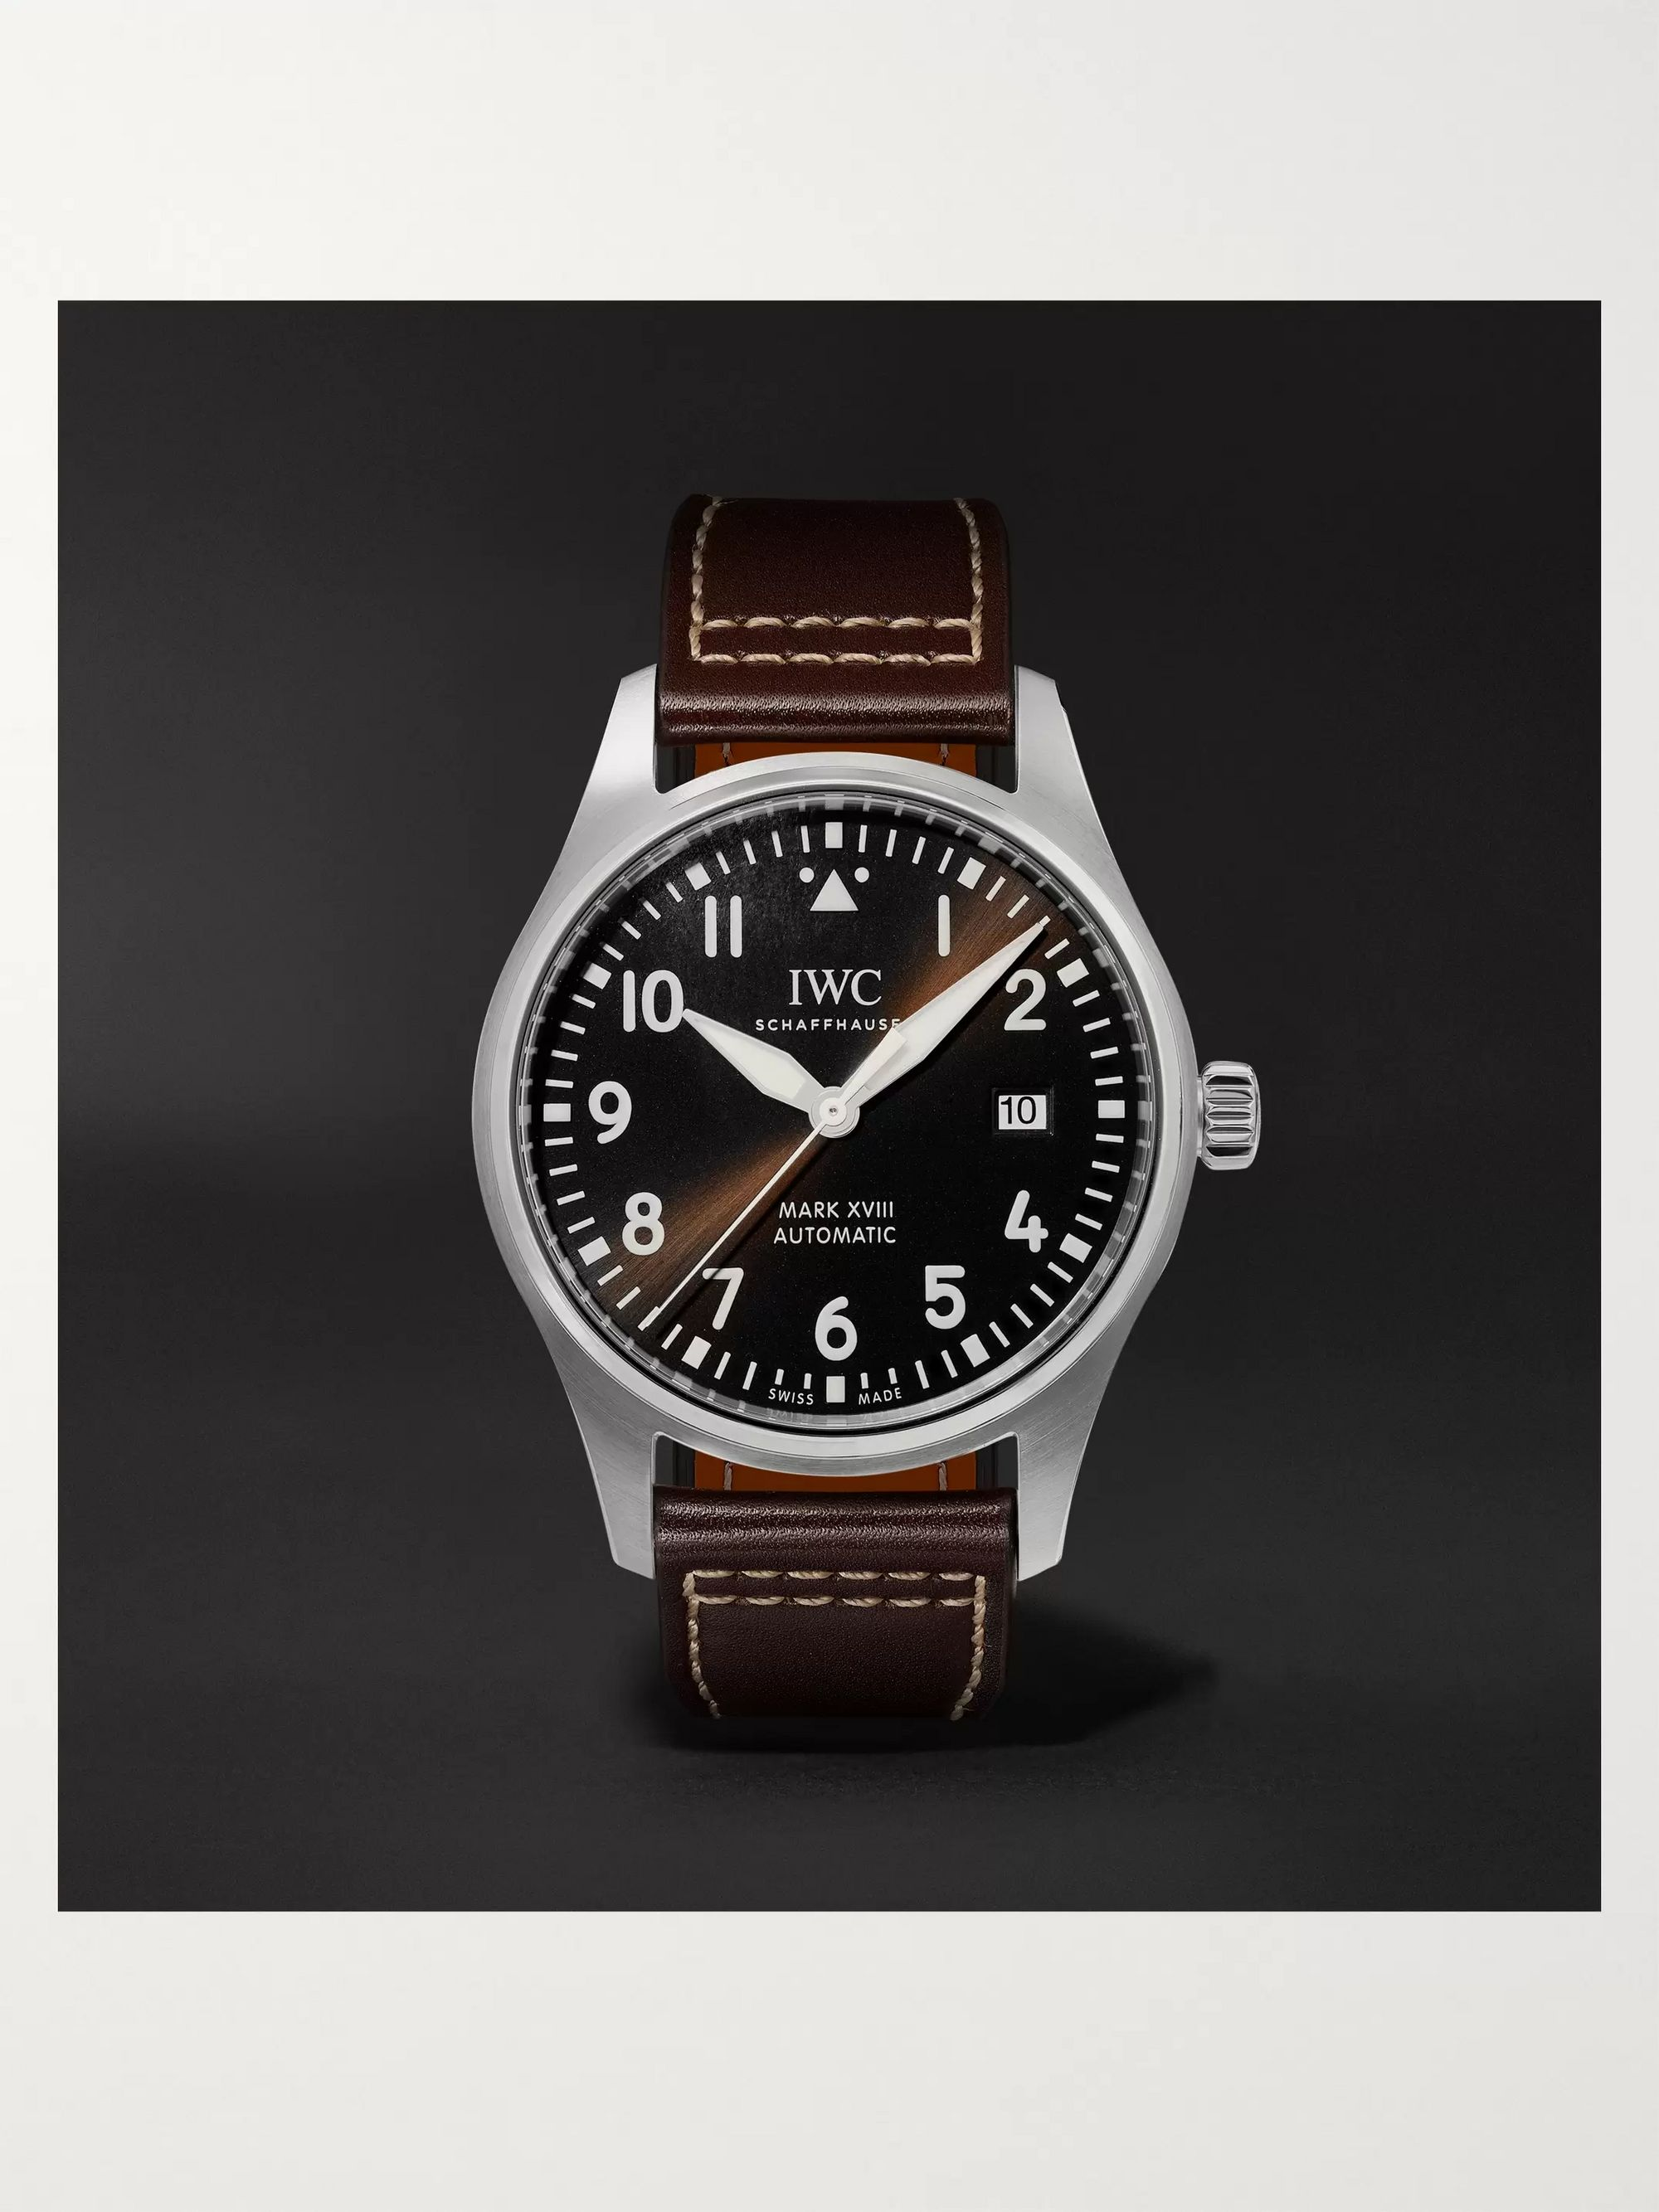 IWC SCHAFFHAUSEN Pilot's Spitfire Automatic 39mm Stainless Steel and Leather Watch, Ref. No. IW326803